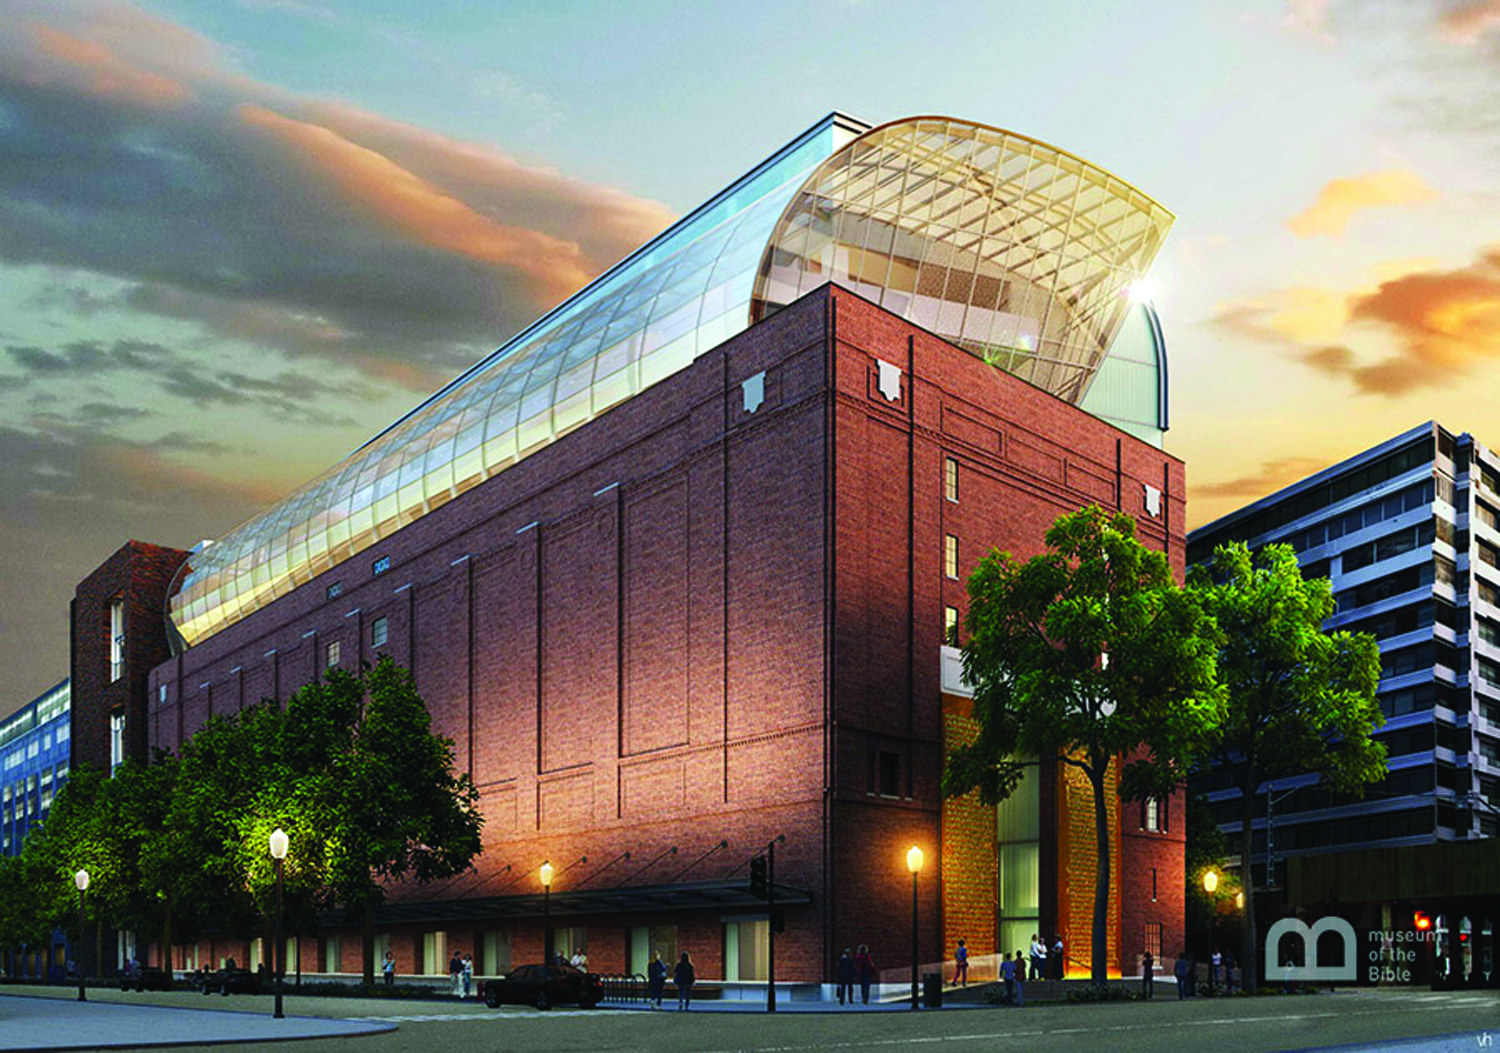 The Museum of the Bible, a 430,000 square-foot facility, is  due to open in 2017 in Washington, D.C.